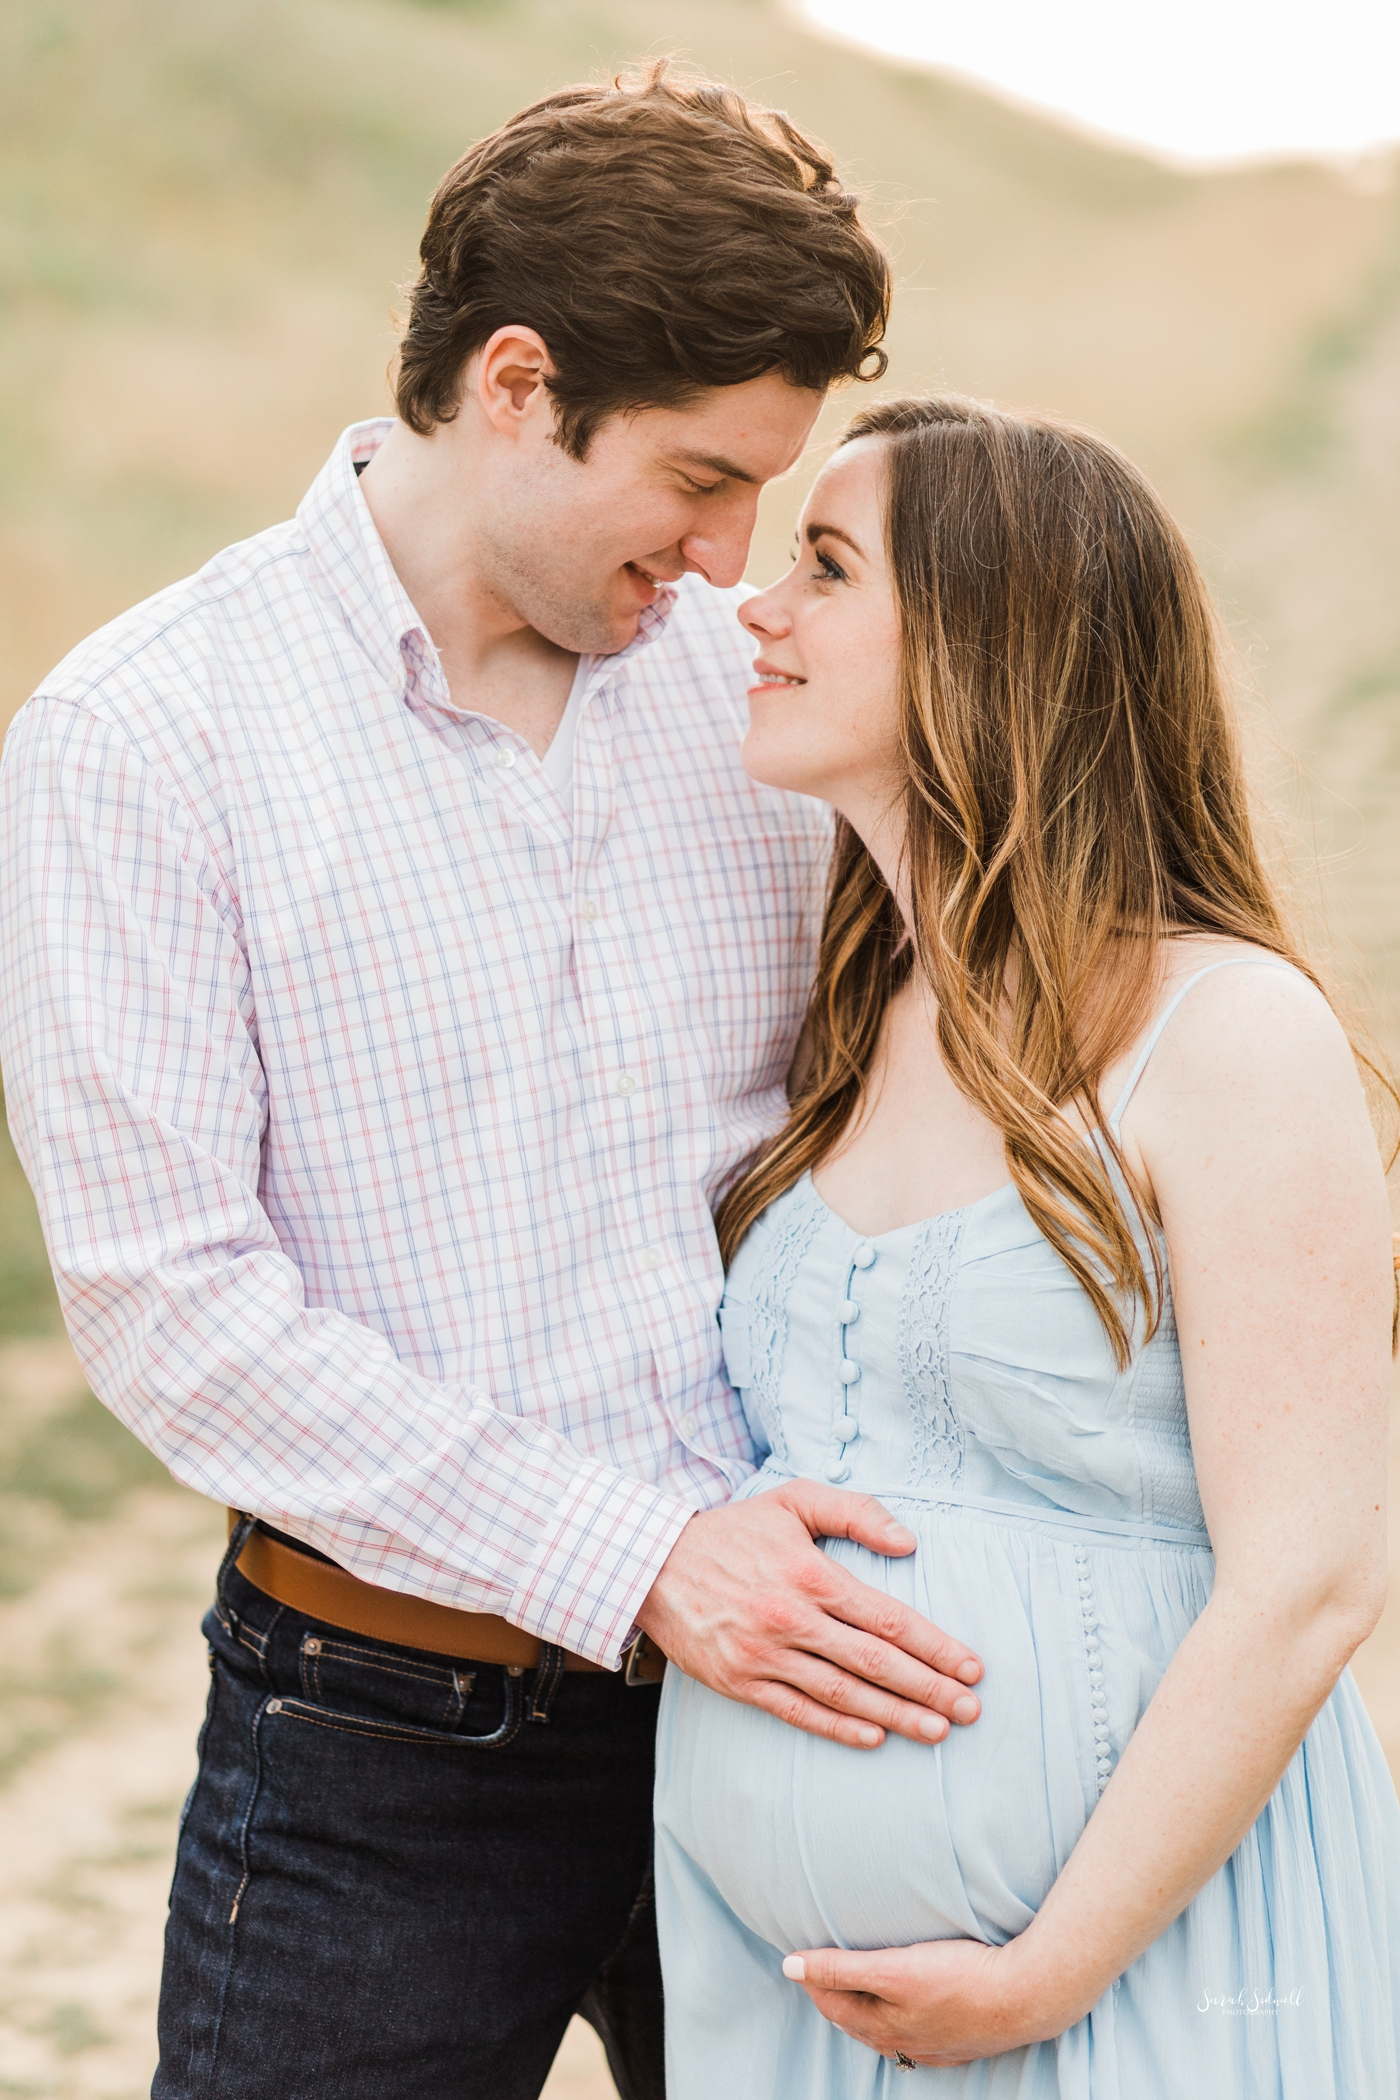 Nashville Maternity Photography | A Gift to Your Child